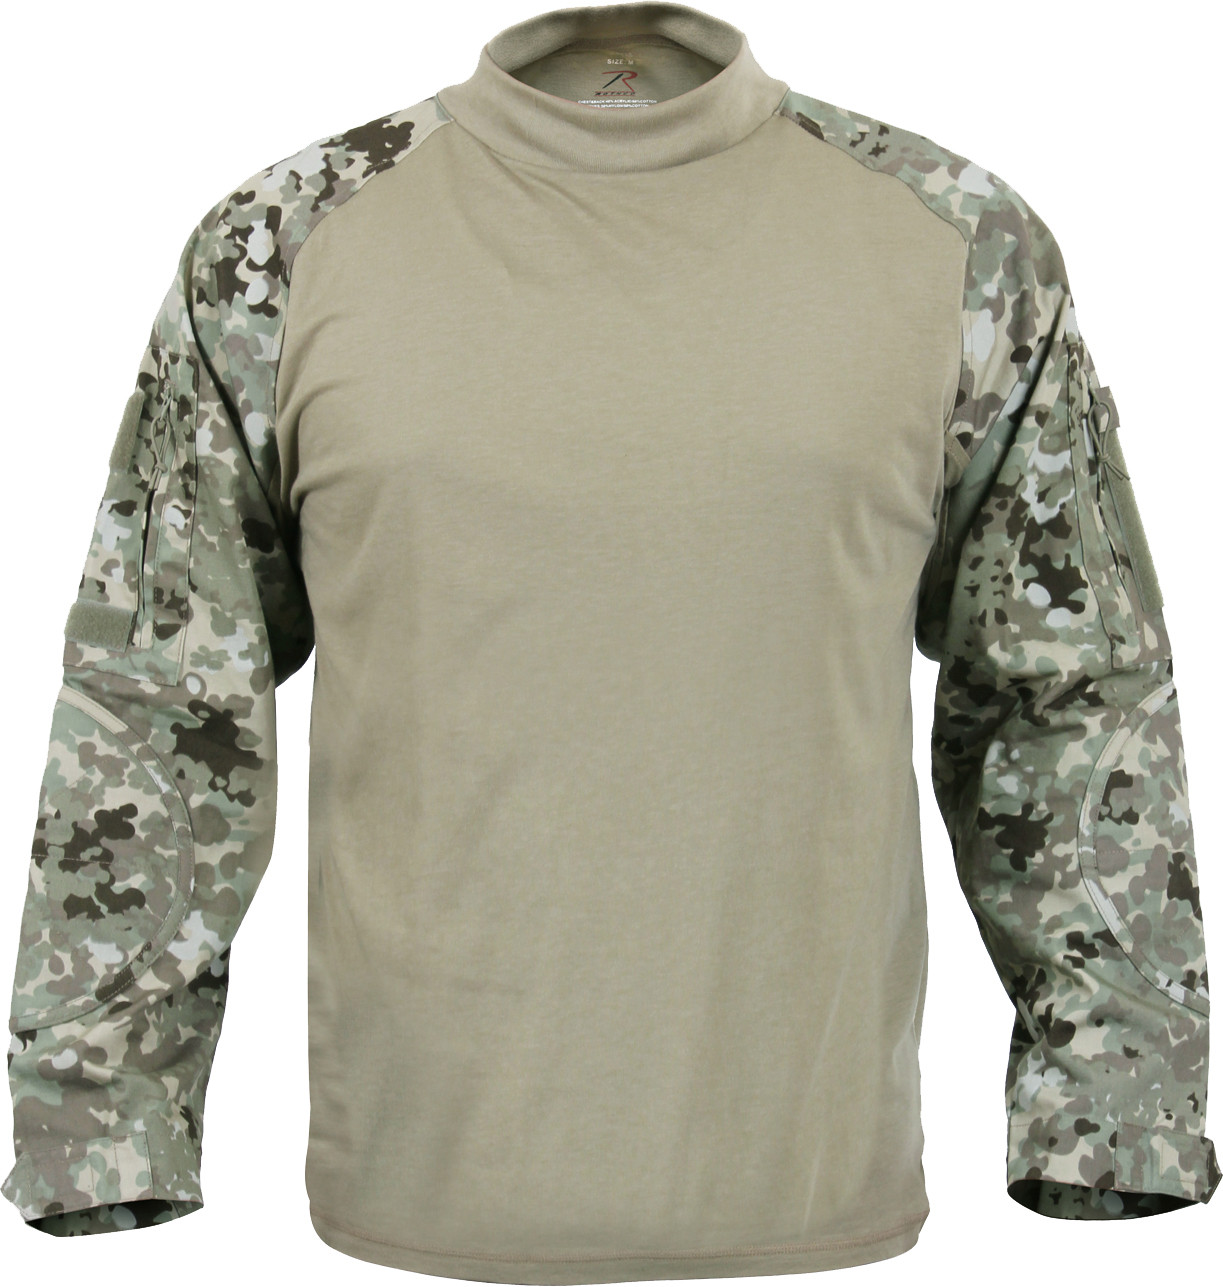 More Views. Total Terrain Camouflage Military Heat Resistant Tactical  Lightweight Combat Shirt ... 93b3789a644